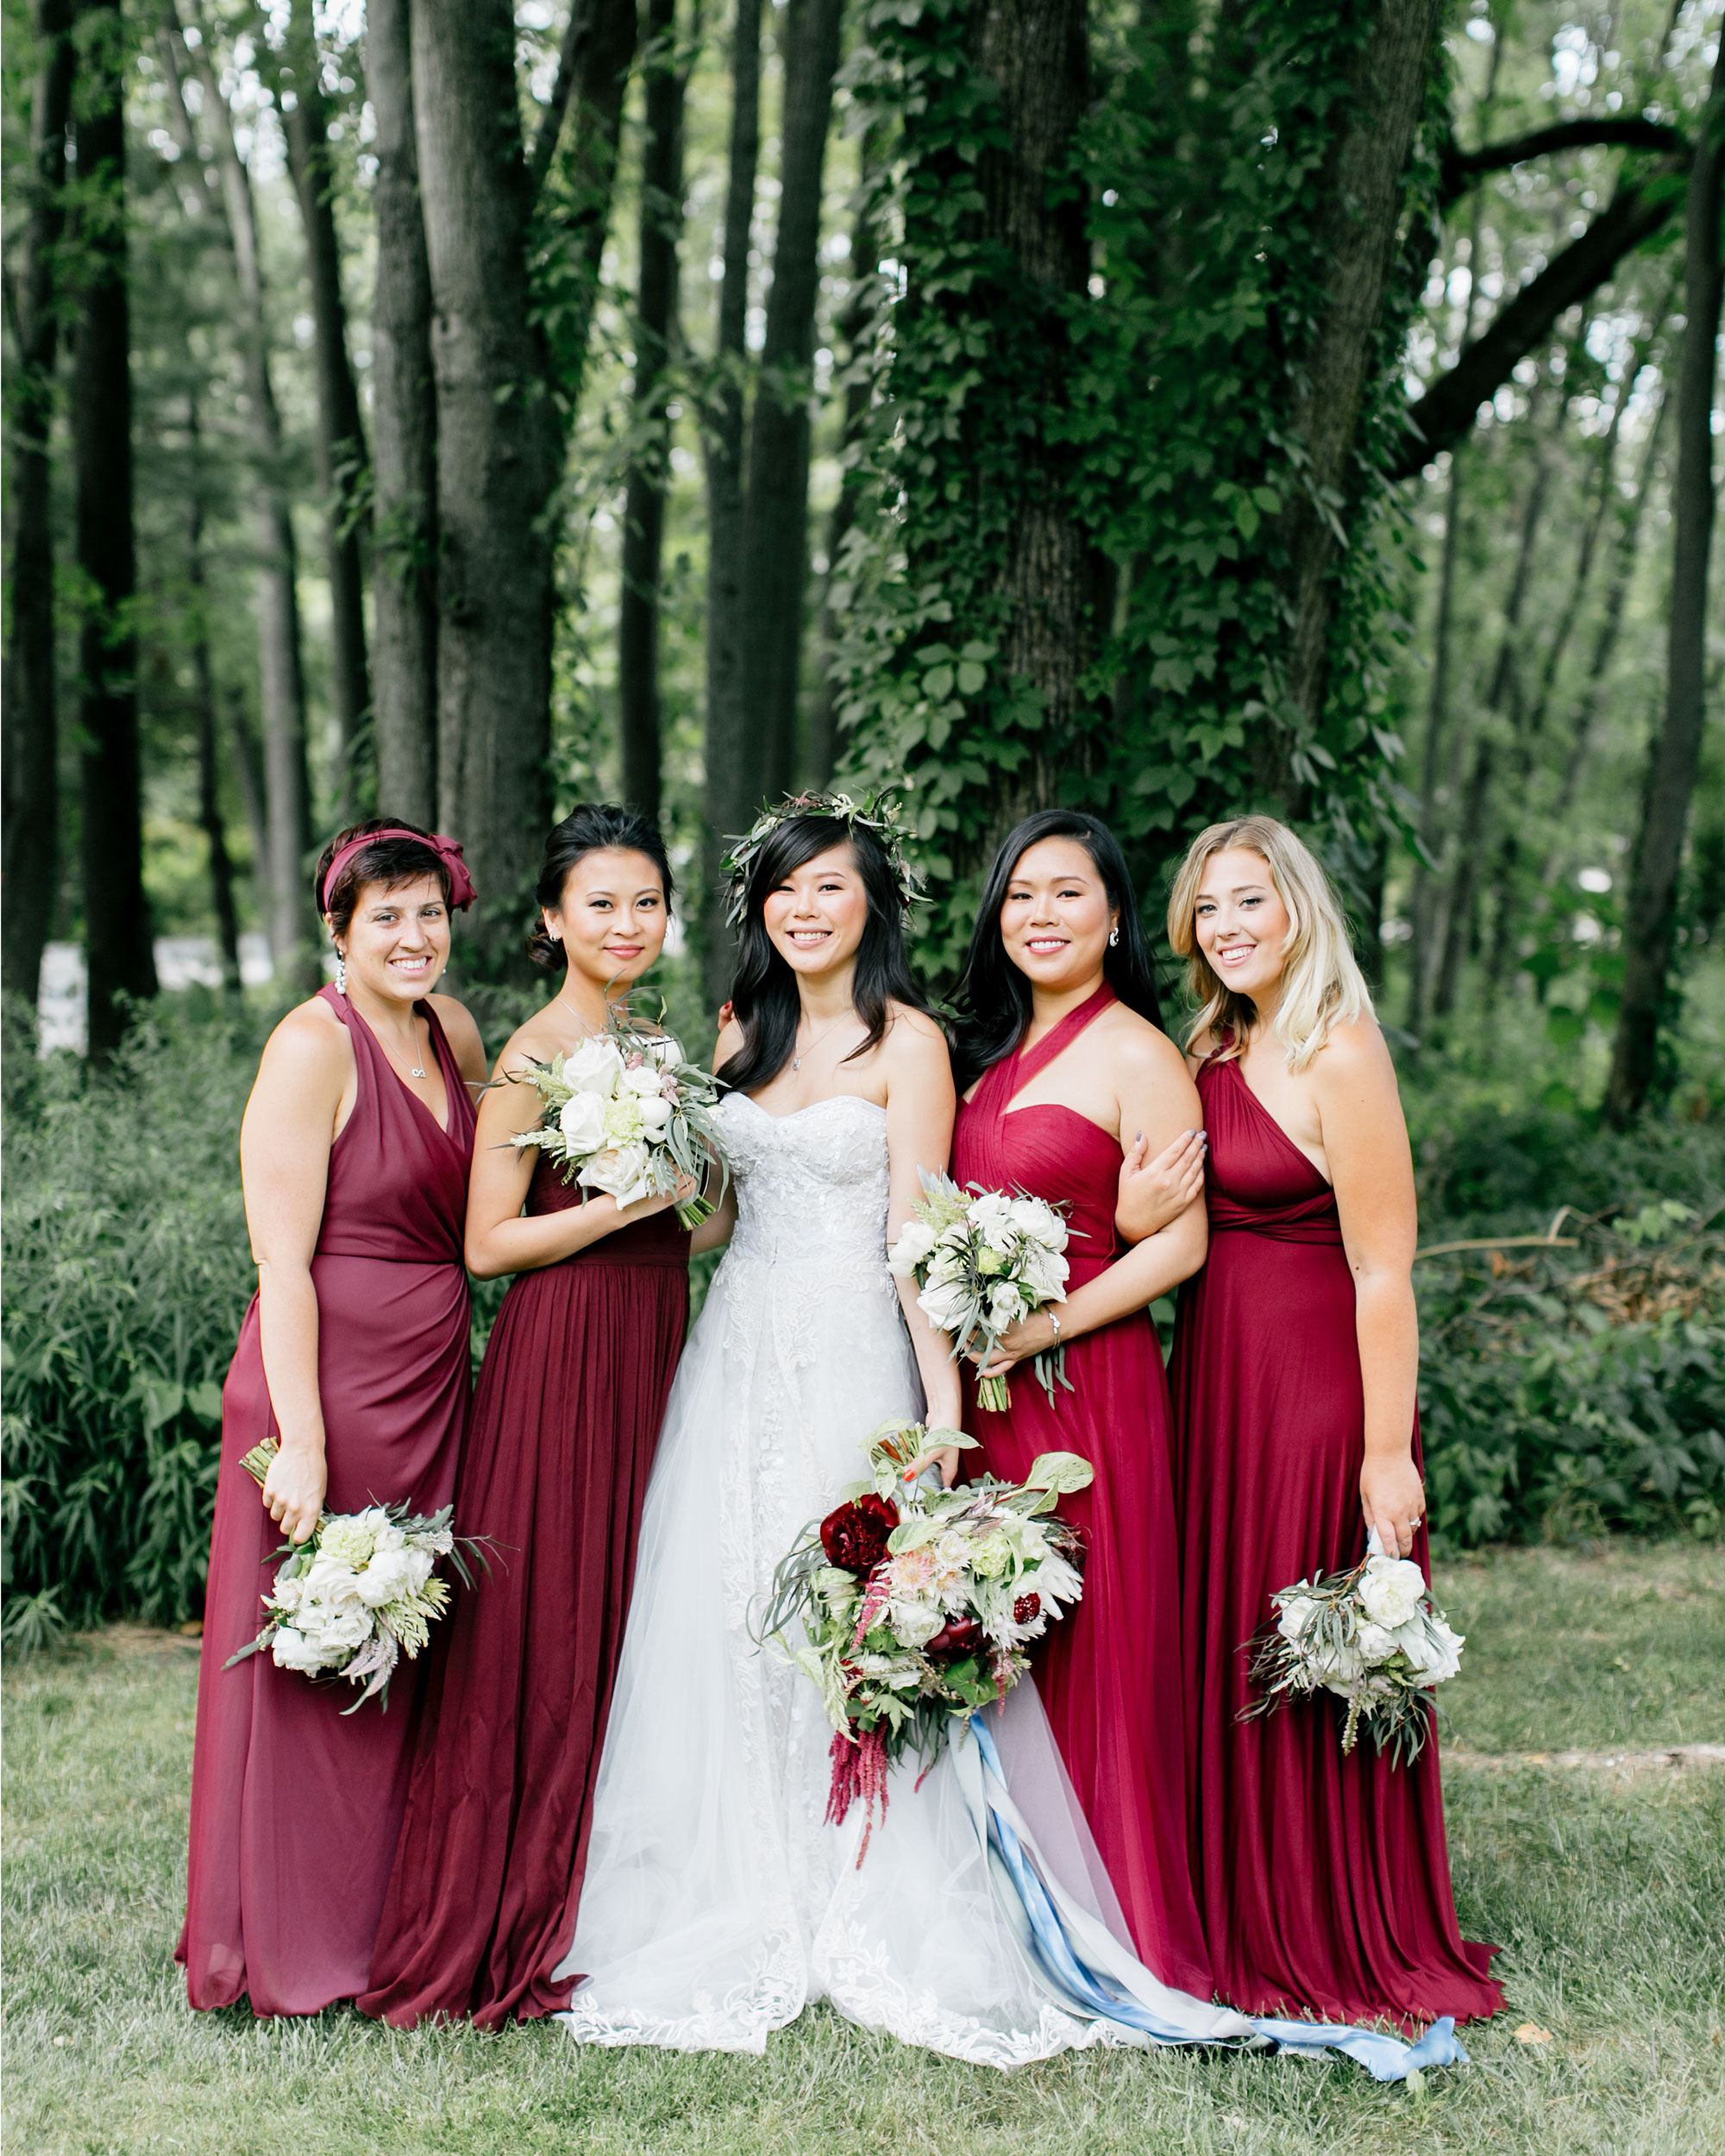 susan-tom-wedding-bridesmaids-079-s112692-0316.jpg